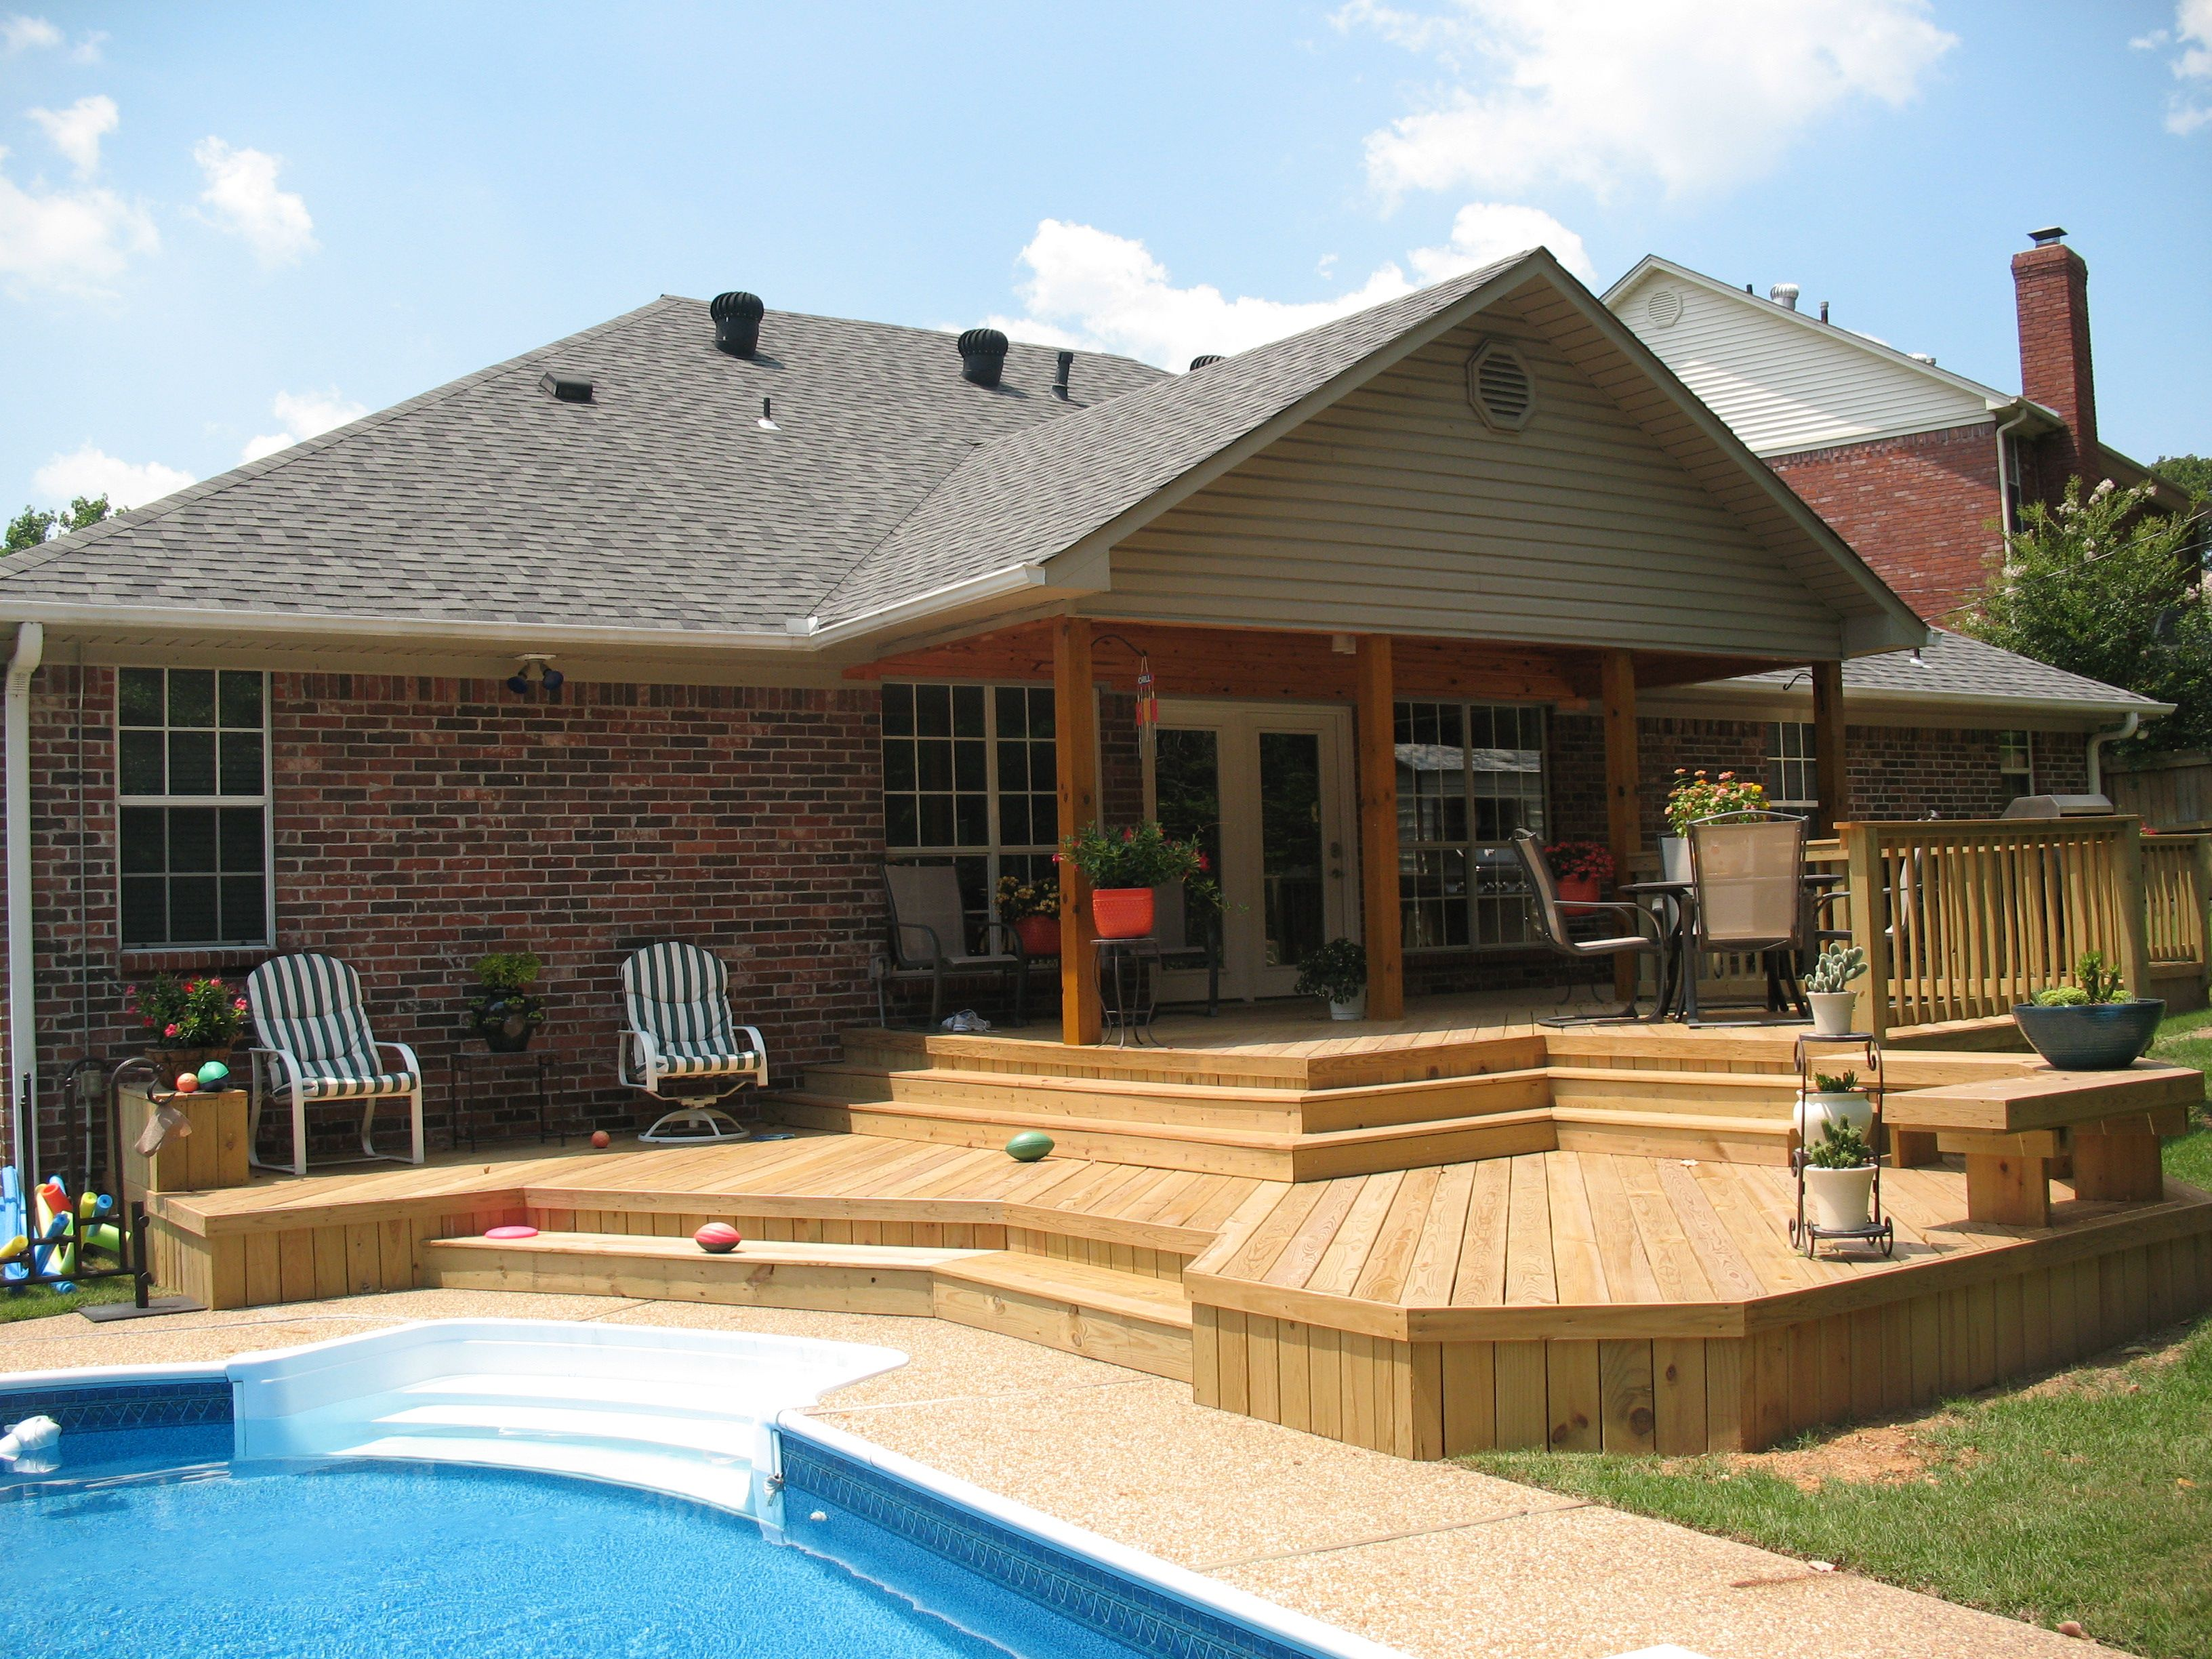 Patio Deck Design Ideas deck design ideas pictures remodel and decor page 11 more Deck Design Ideas Pool Deck Multi Level Deck Deck Builder In Arkansas